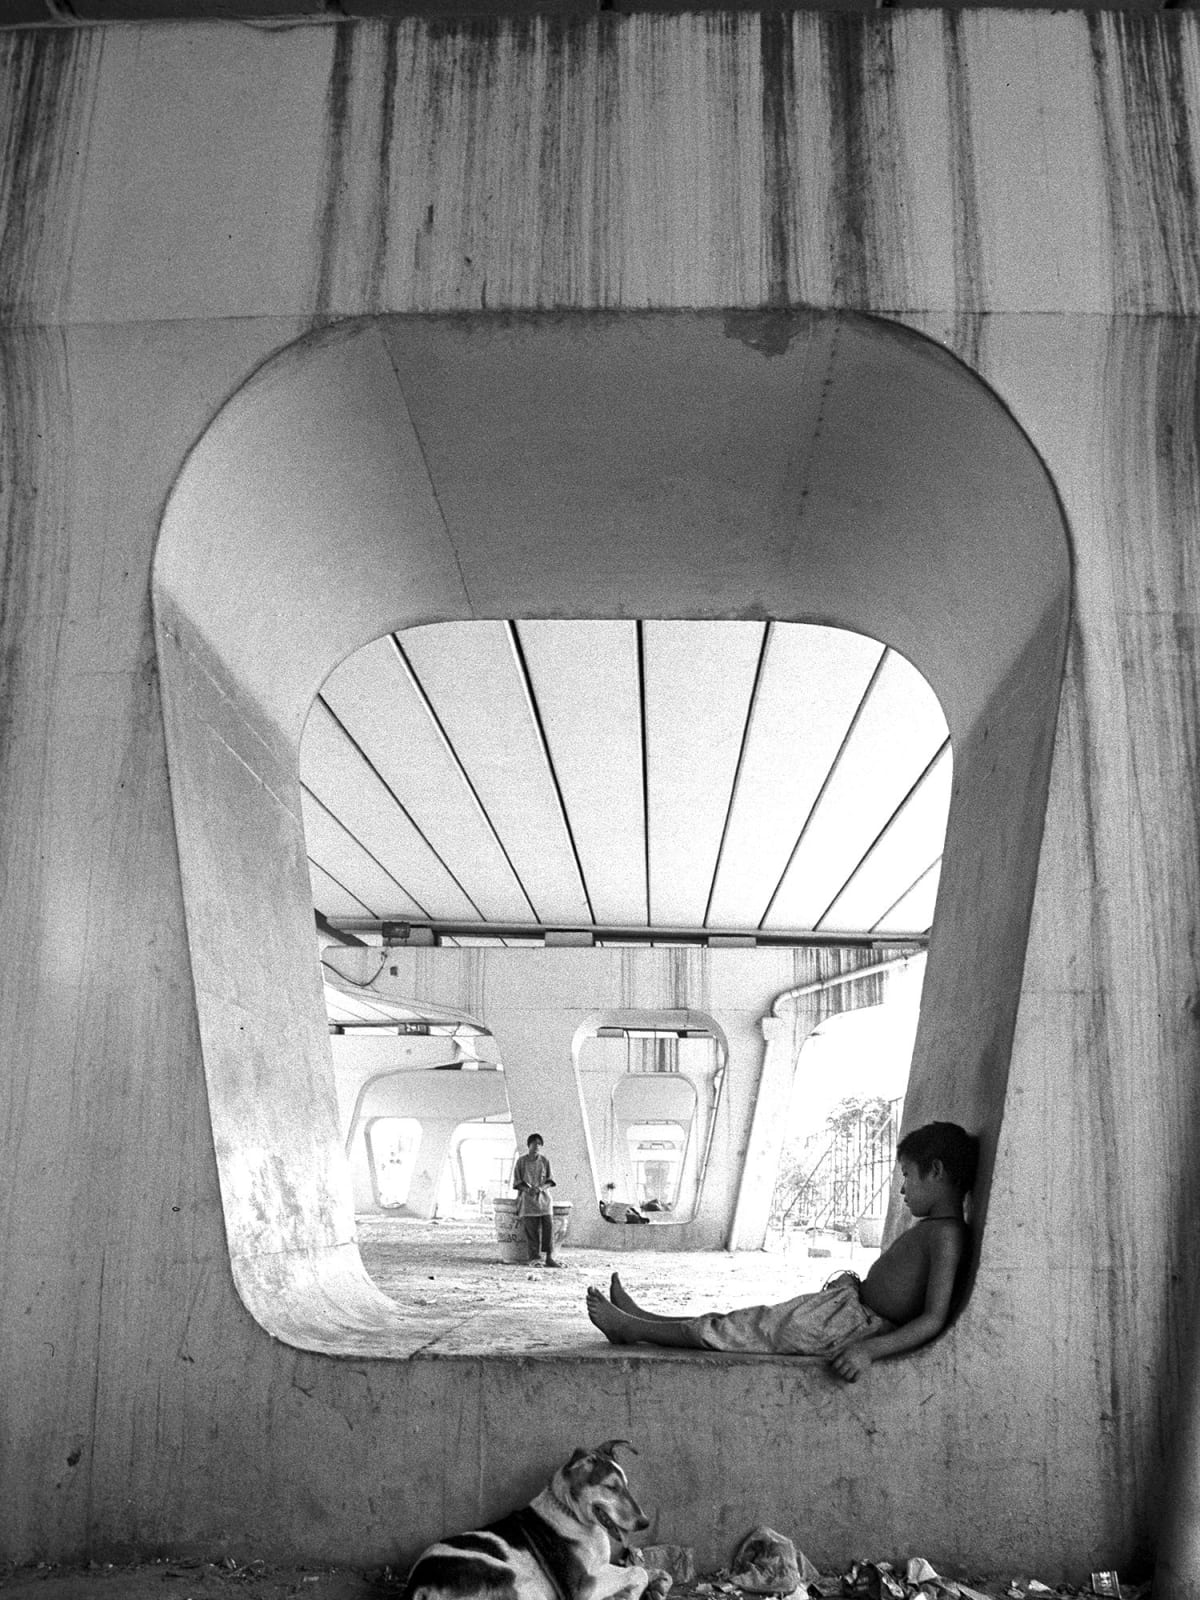 Ravi, Seven Years Old, Begging for a Living near Indian Institute of Technology Flyover, New Delhi - FotoFest